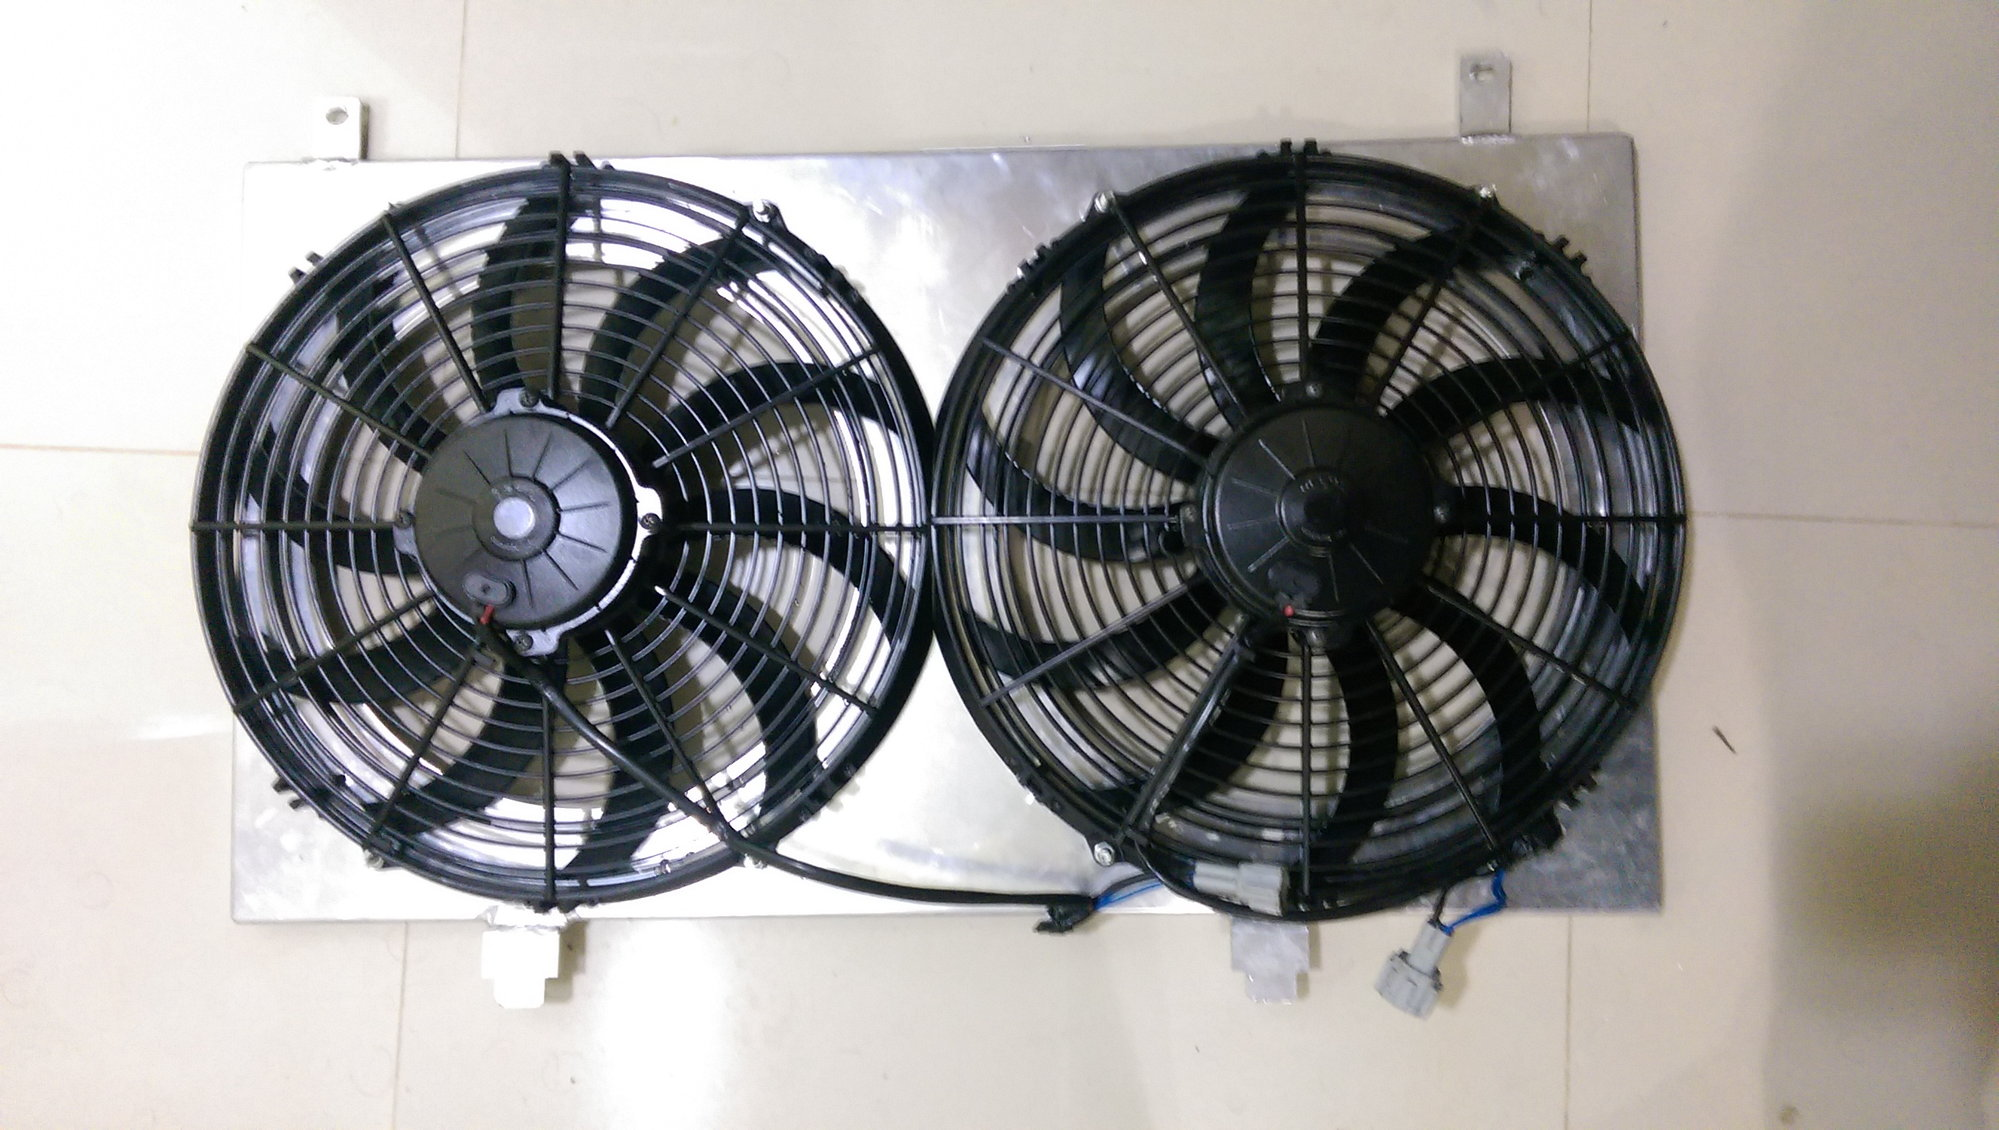 Issues With Wiring Mishimoto Radiator Fans